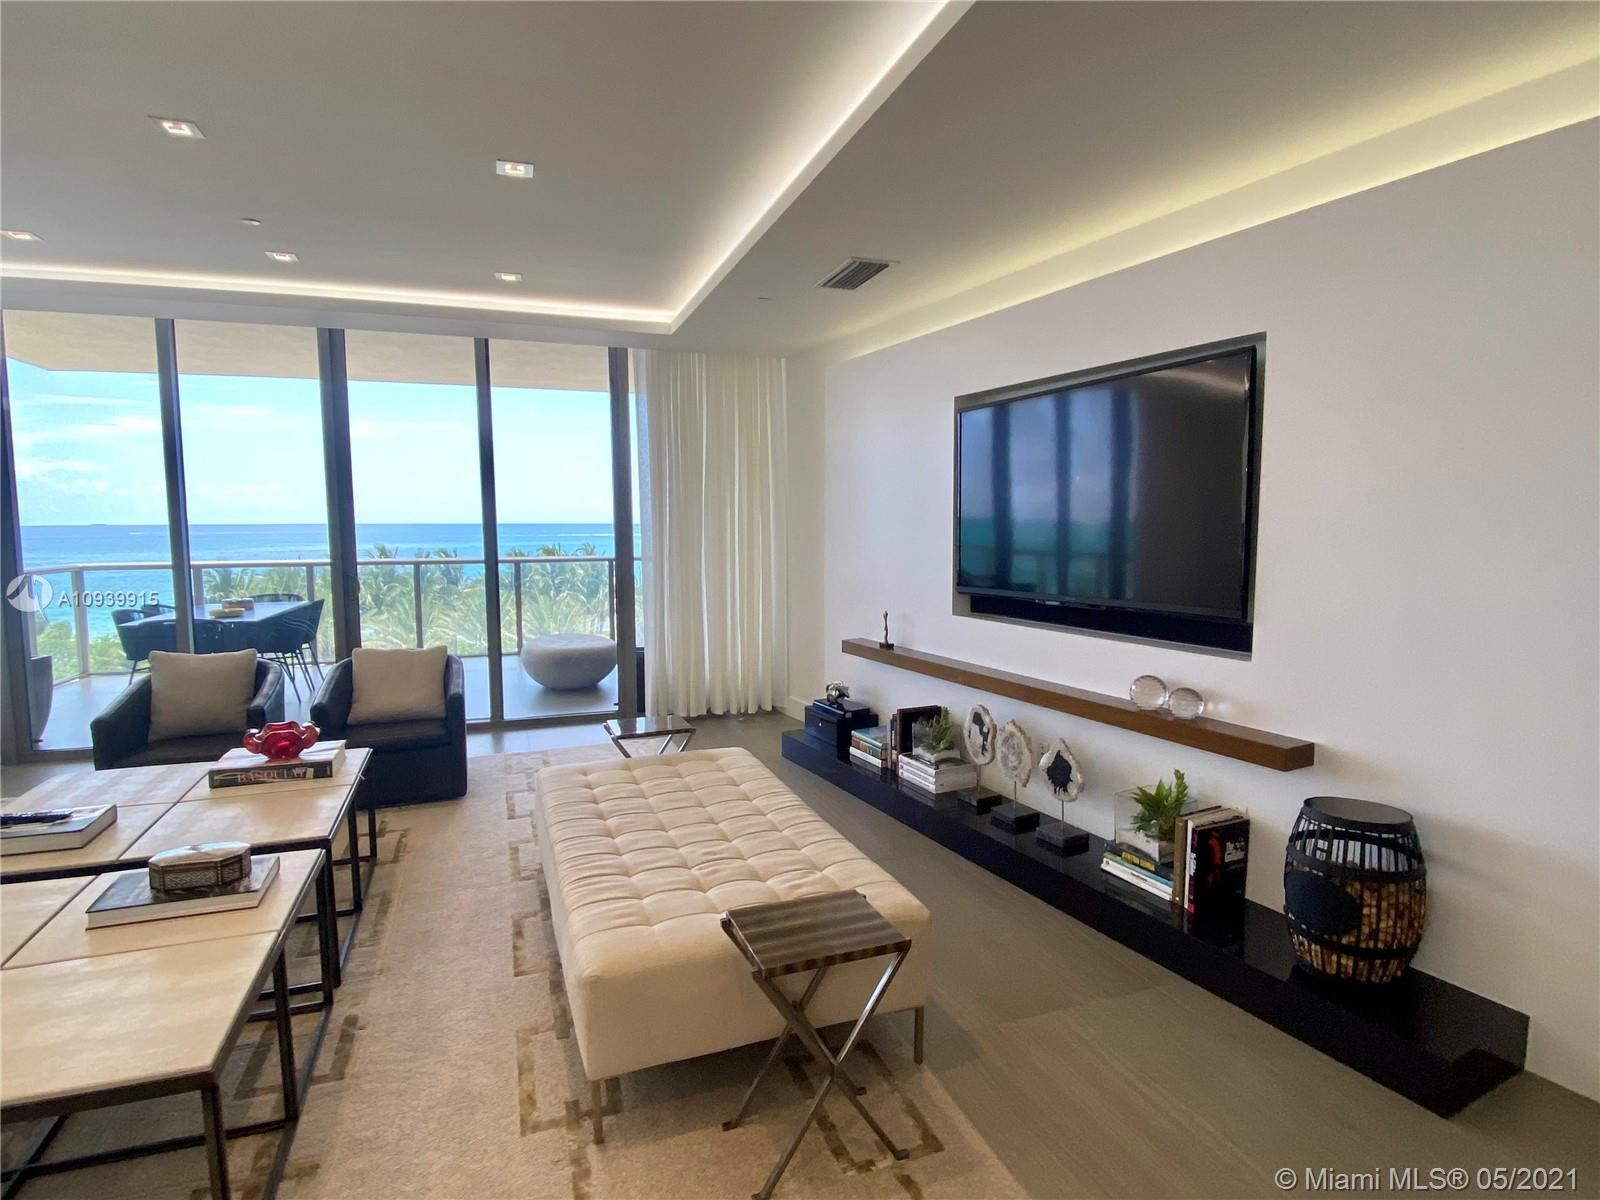 9705 Collins Ave #601N, Bal Harbour, FL 33154 - #: A10939915